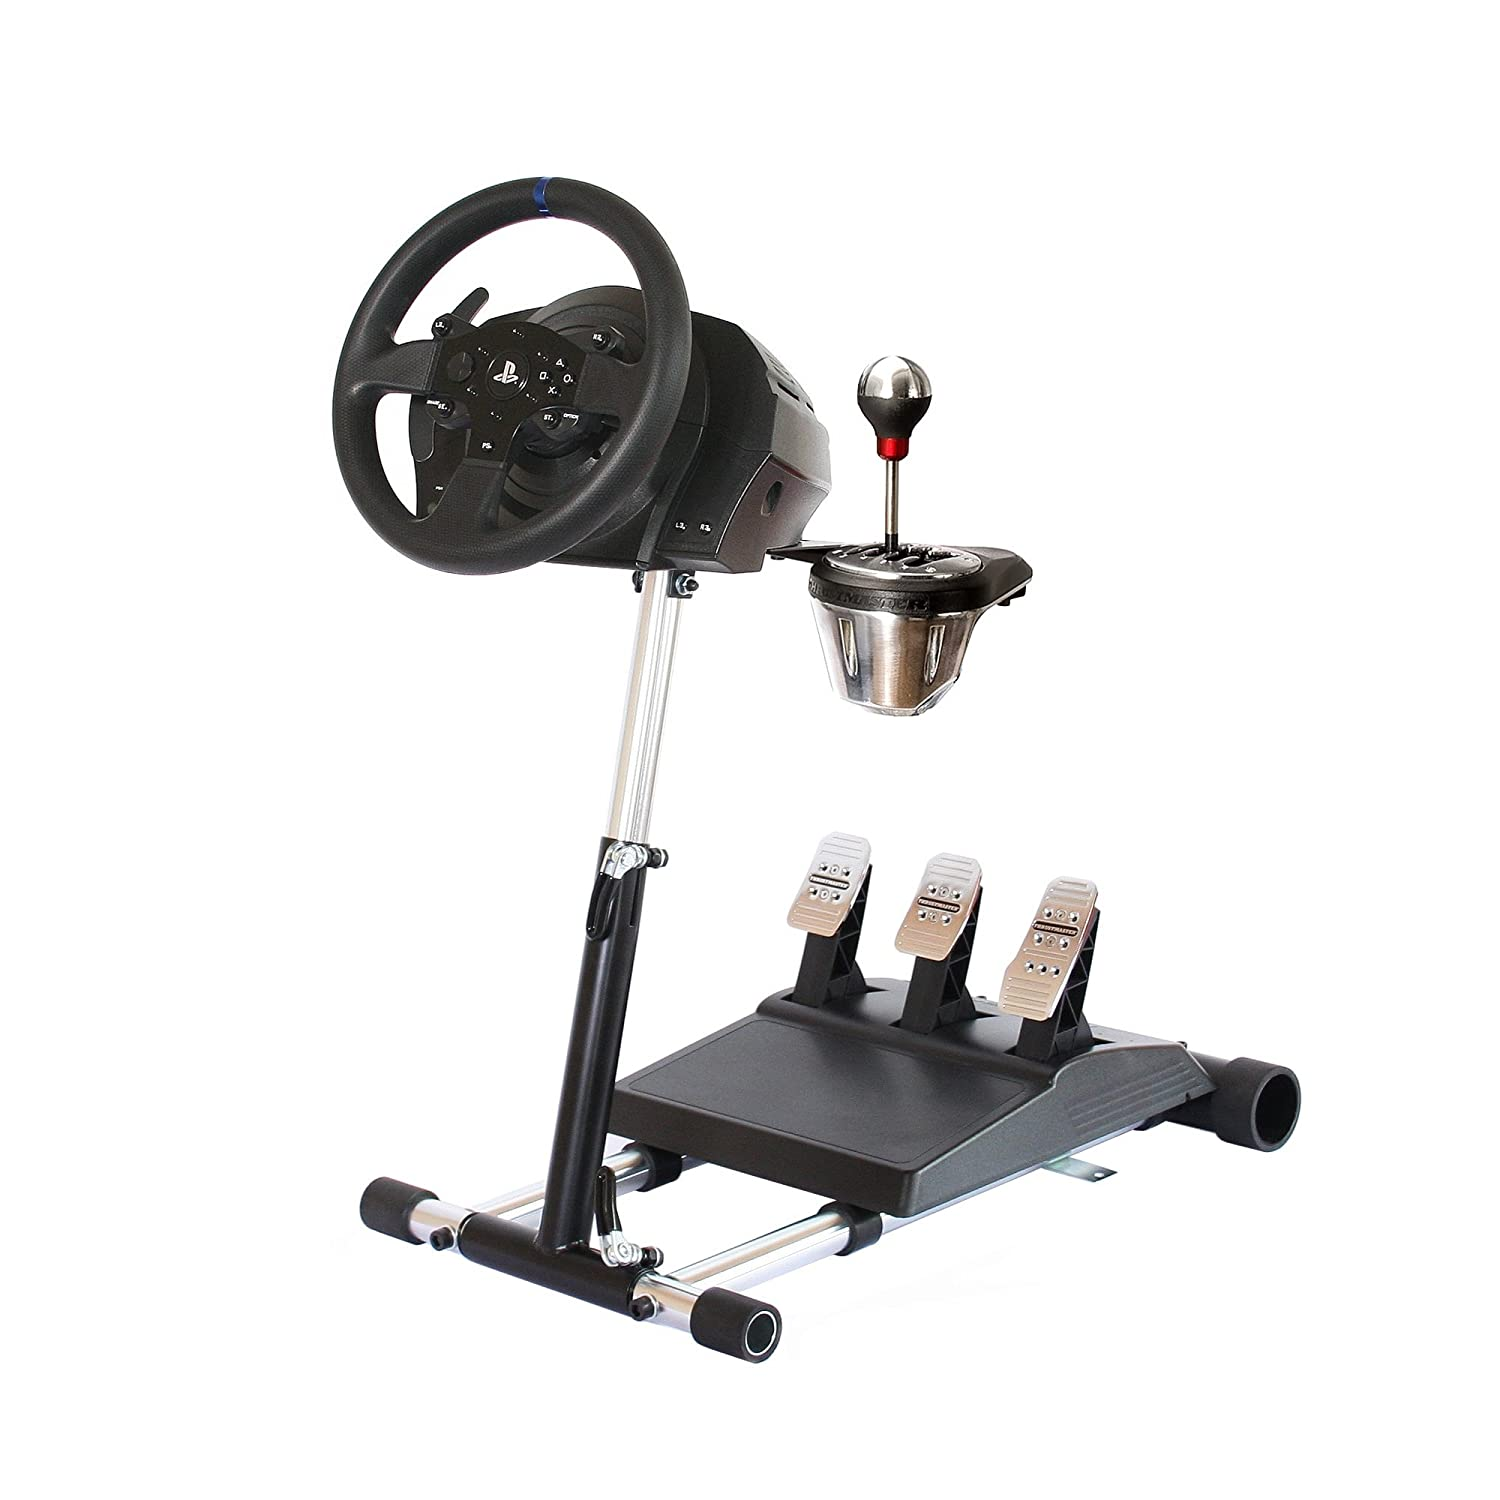 Wheelstandpro Wheel stand pro for thrustmaster tx racing wheel deluxe v